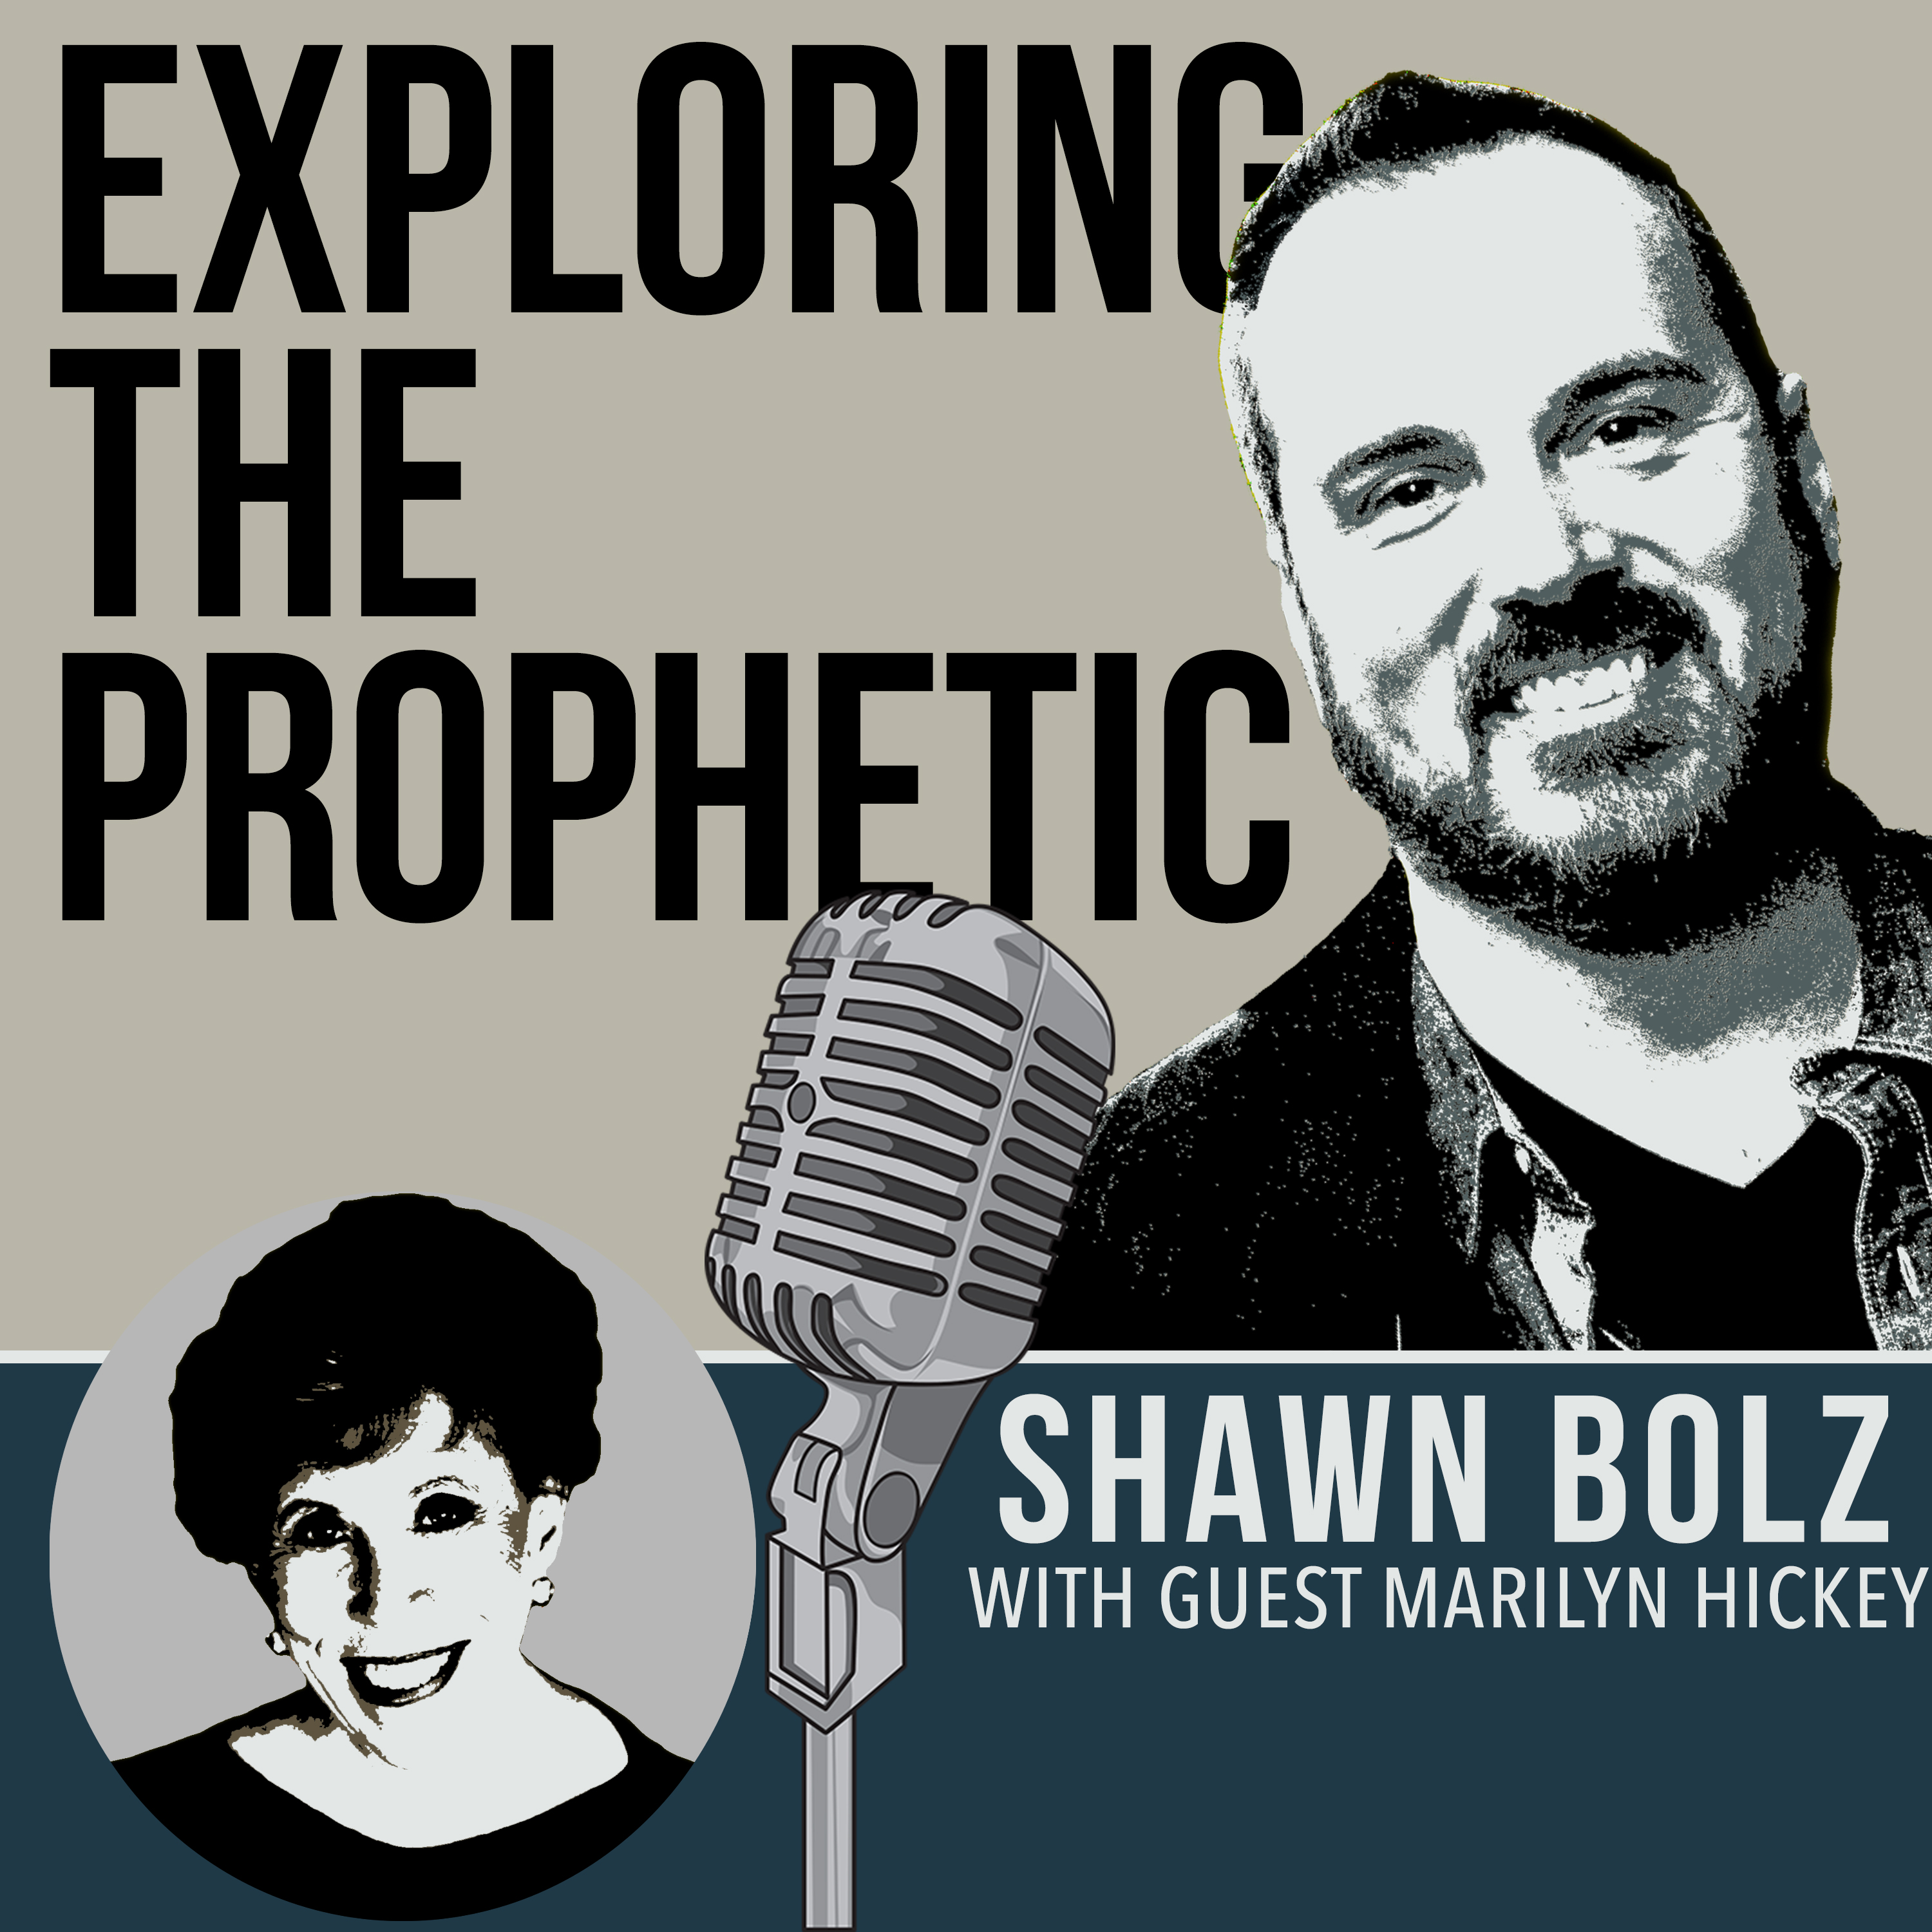 Artwork for Exploring the Prophetic with Marilyn Hickey (Ep. 8)